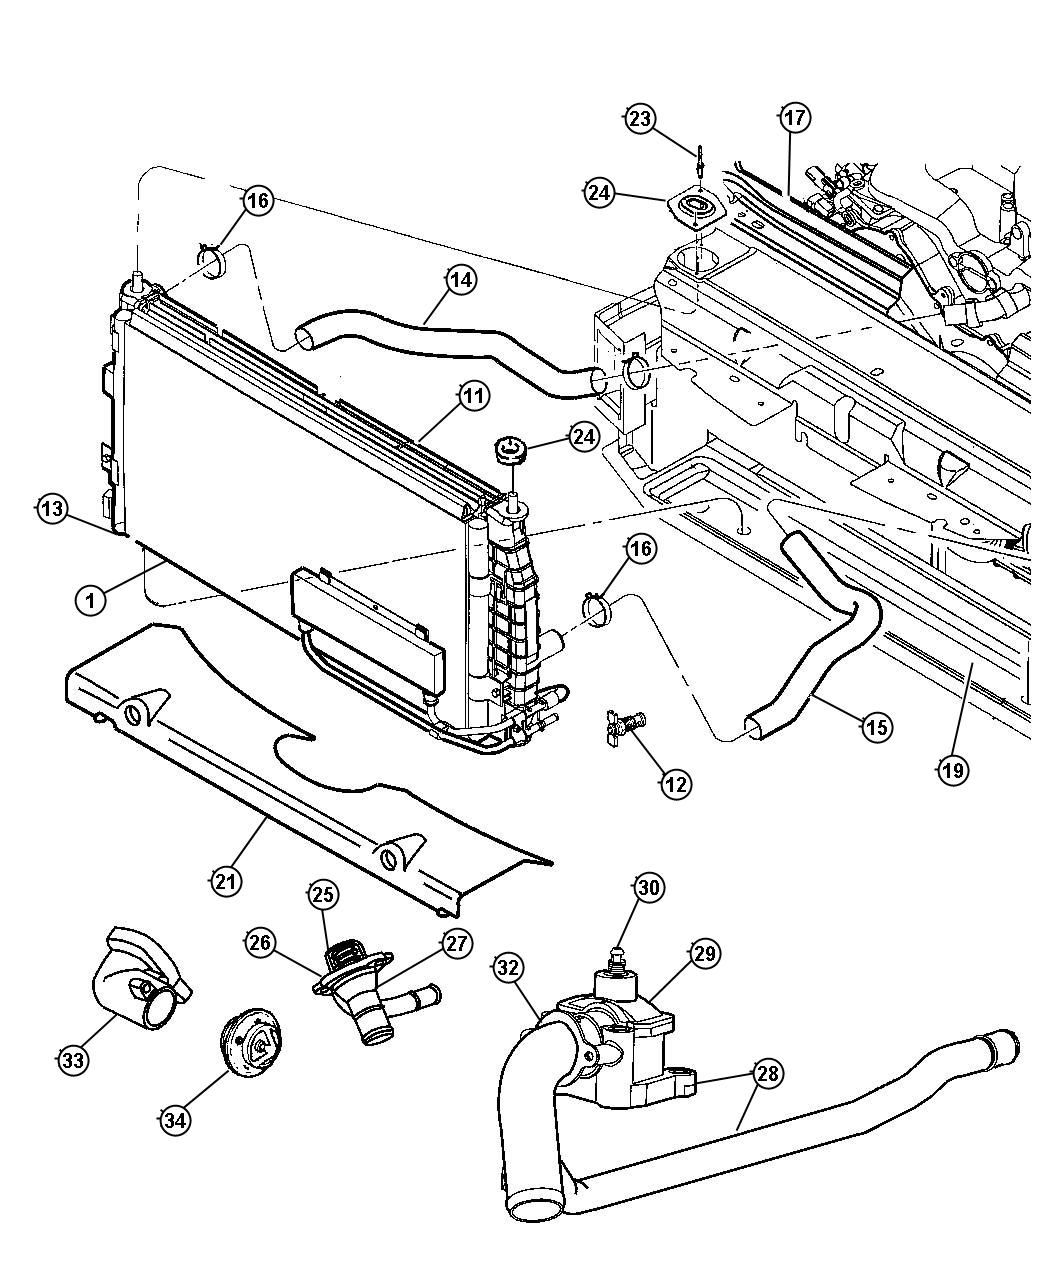 7920CH03 Intake Manifold also 2003 Cadillac Cts Vacuum Hose Diagram likewise ShowAssembly as well Cadillac Deville Pcm Location moreover RepairGuideContent. on 2001 cadillac catera engine cooling diagram